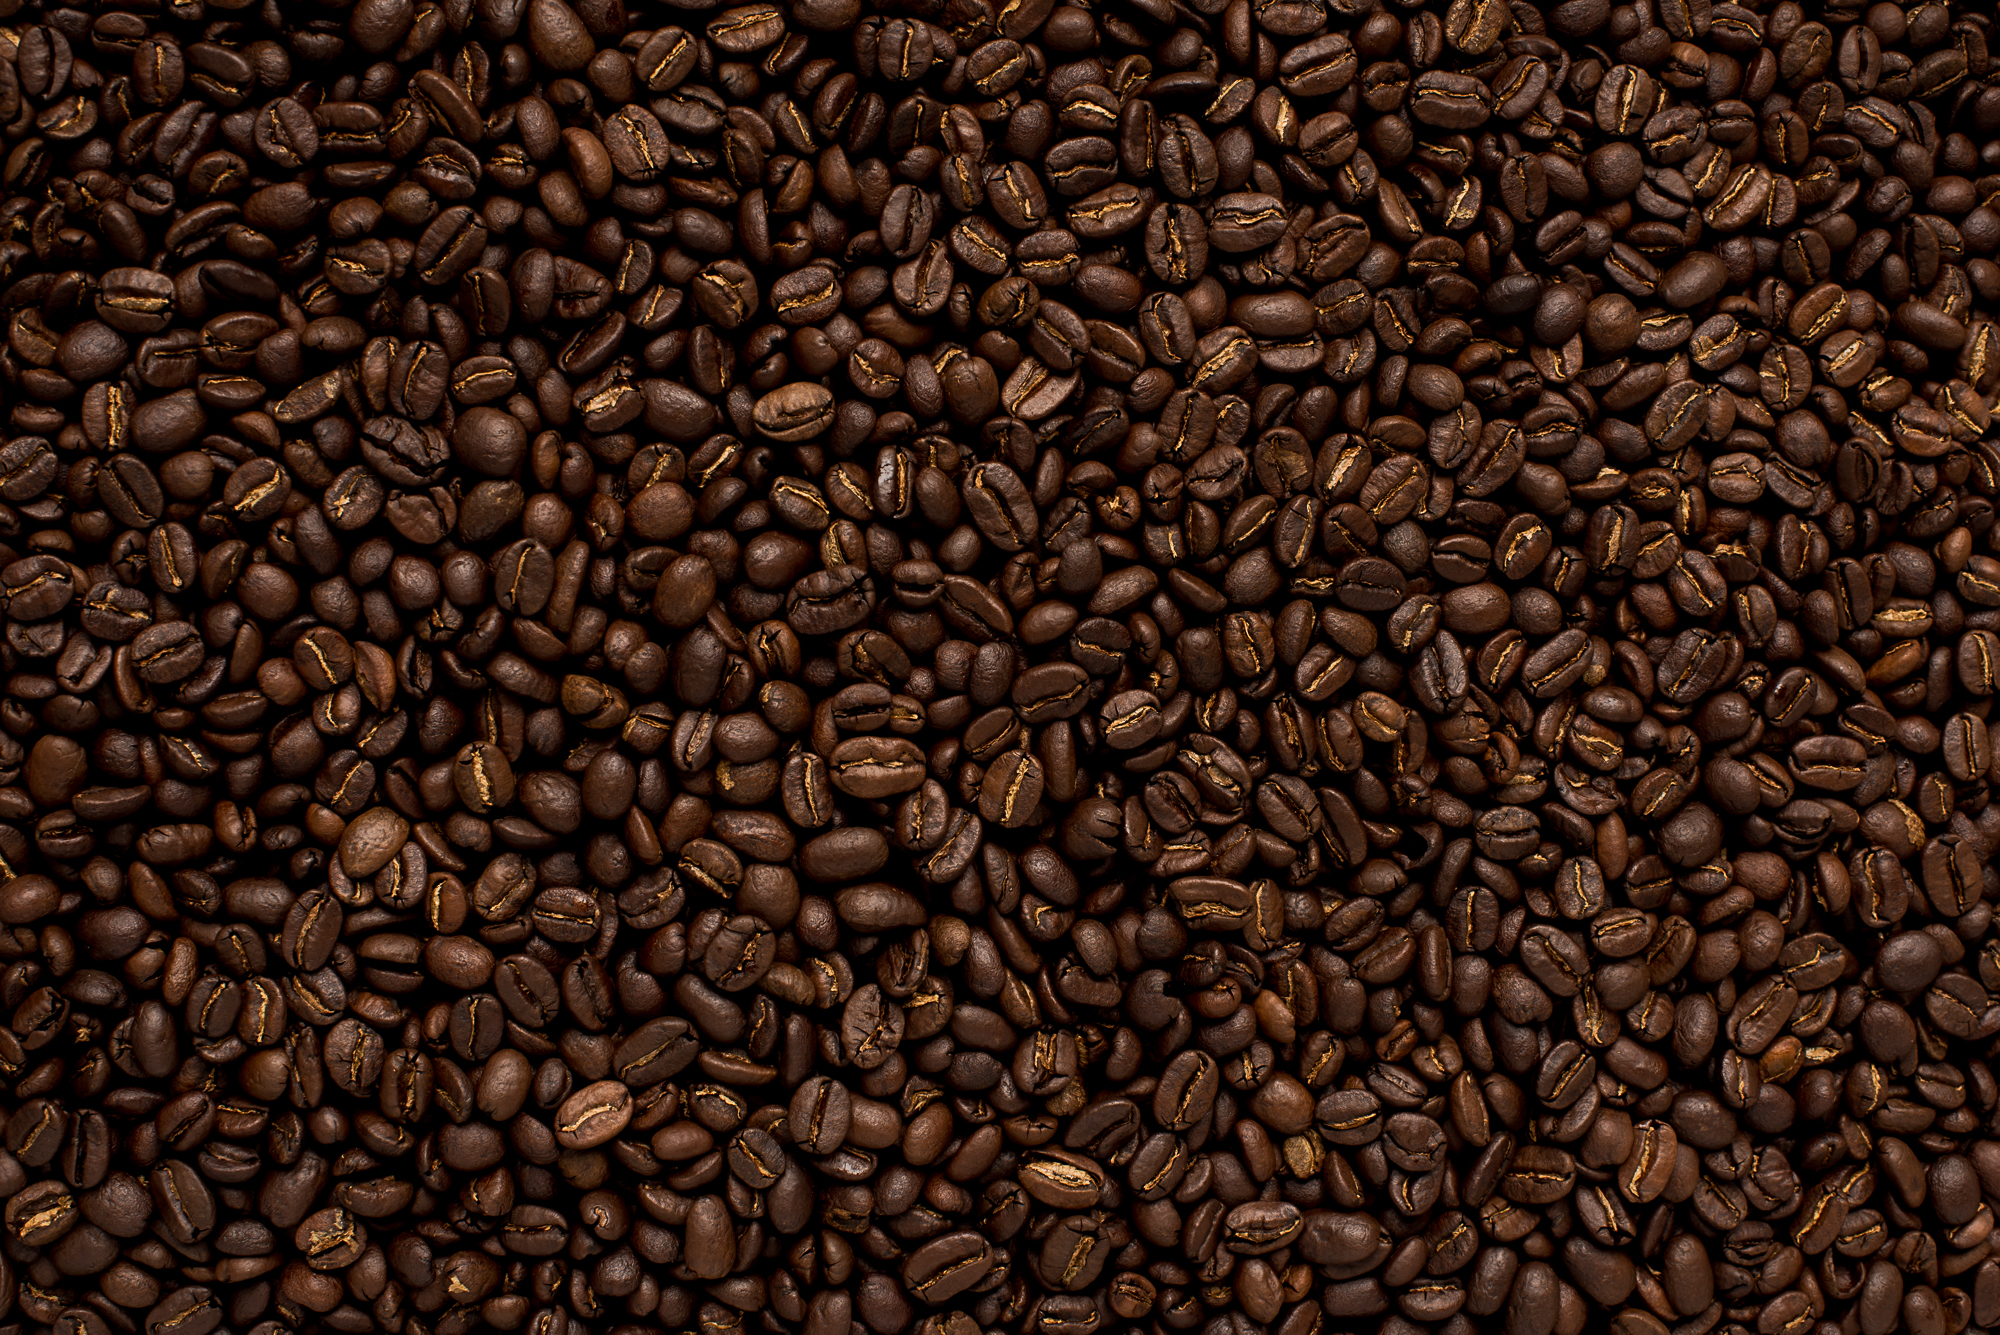 Java Jerry - Freshly Roasted Coffee Beans from java Jerry's